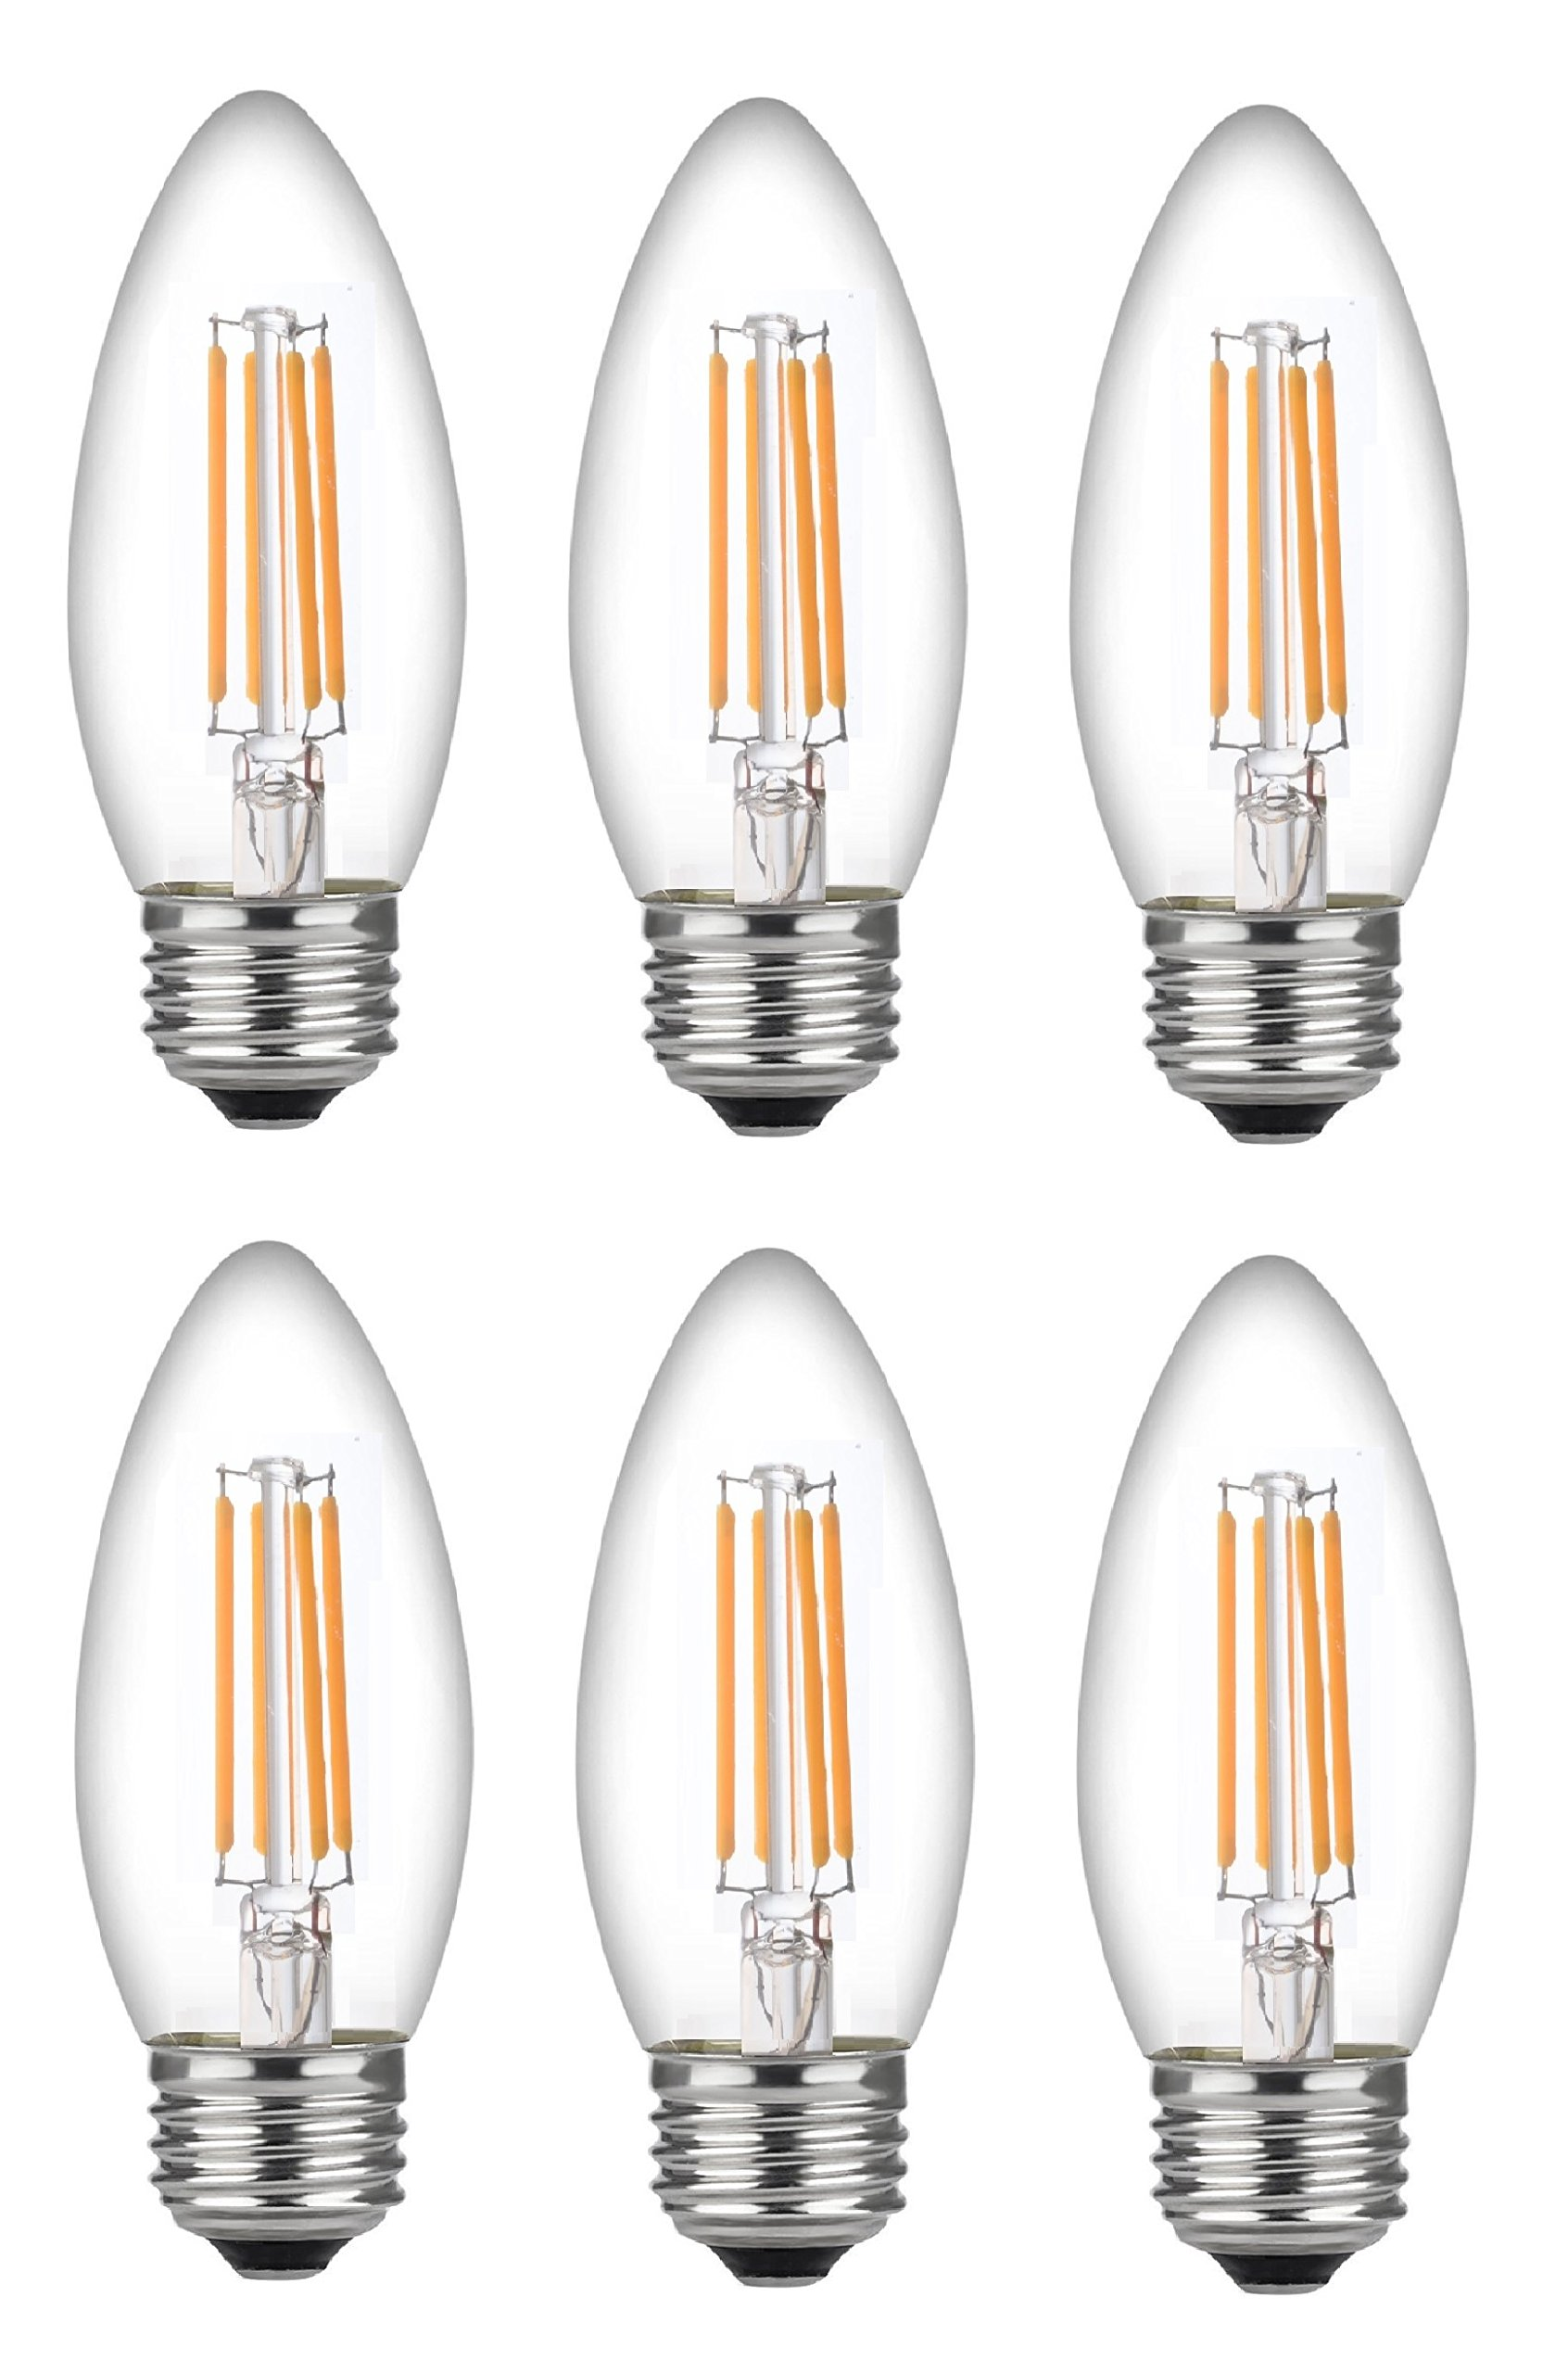 Bioluz LED Dimmable 40 Watt Candelabra Bulbs Flame Tip LED Uses only 5 watts